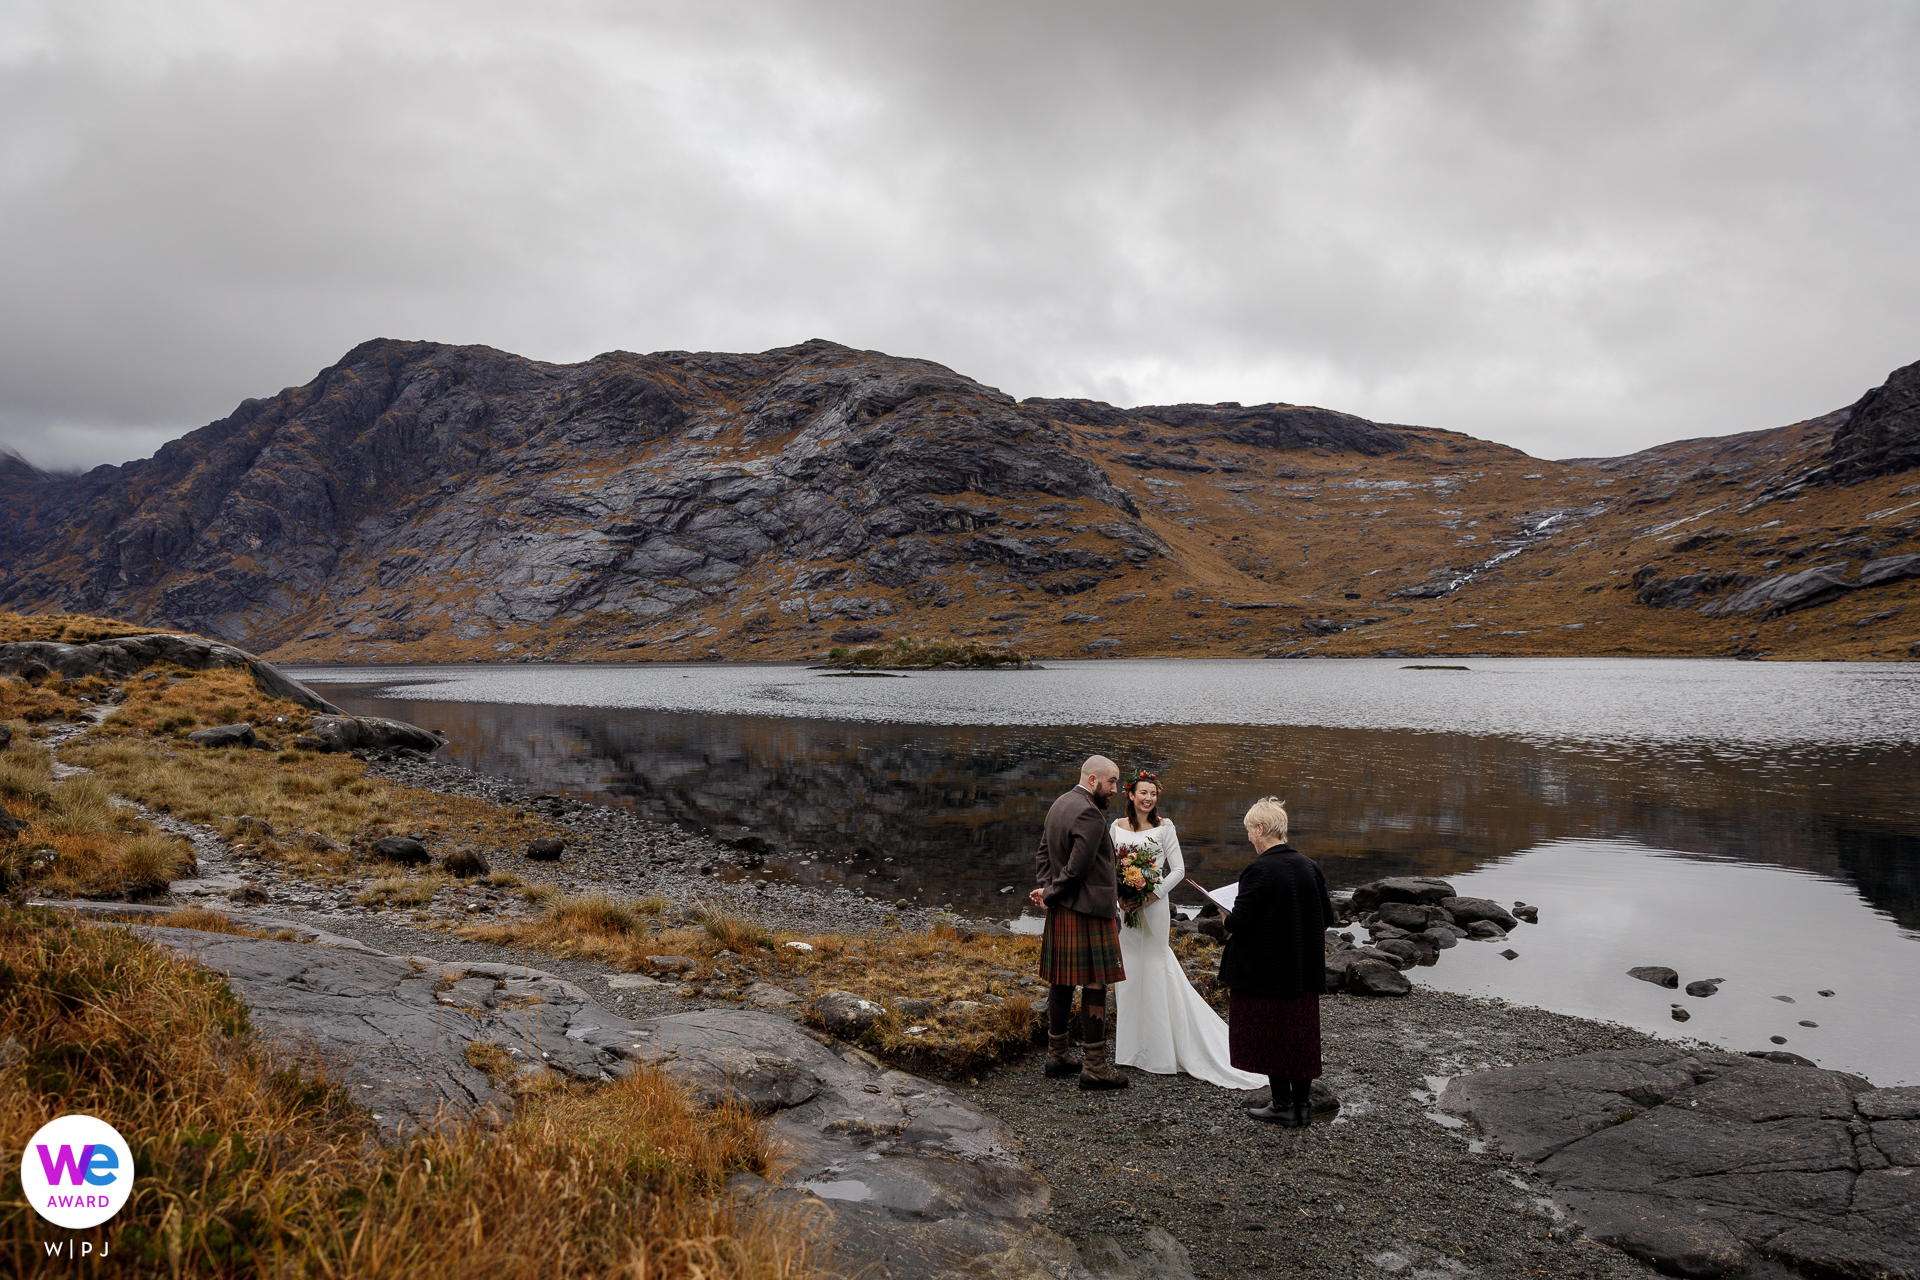 Isle of Skye, Scotland, UK Elopement Photo |  The bride and groom live near Edinburgh, Scotland but they wanted to get married somewhere beautiful and remote so they chose the Isle of Skye in the Scottish Highlands